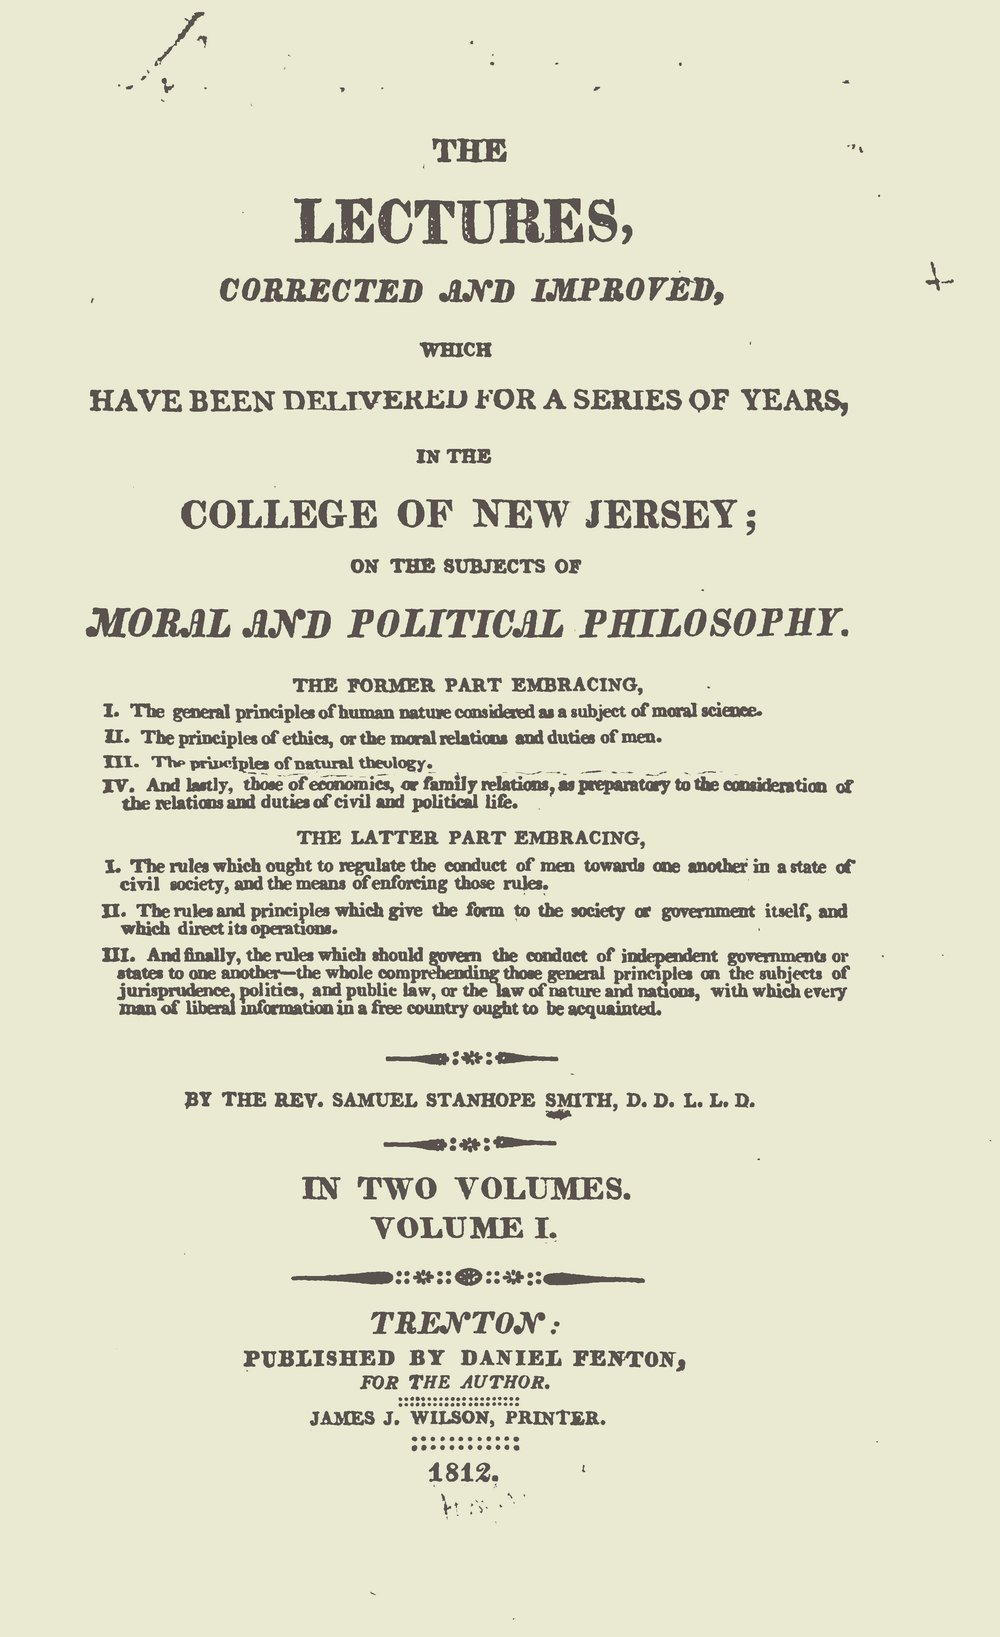 Smith, Samuel Stanhope, Lectures on Moral and Political Philosophy, Vol. 1 Title Page.jpg